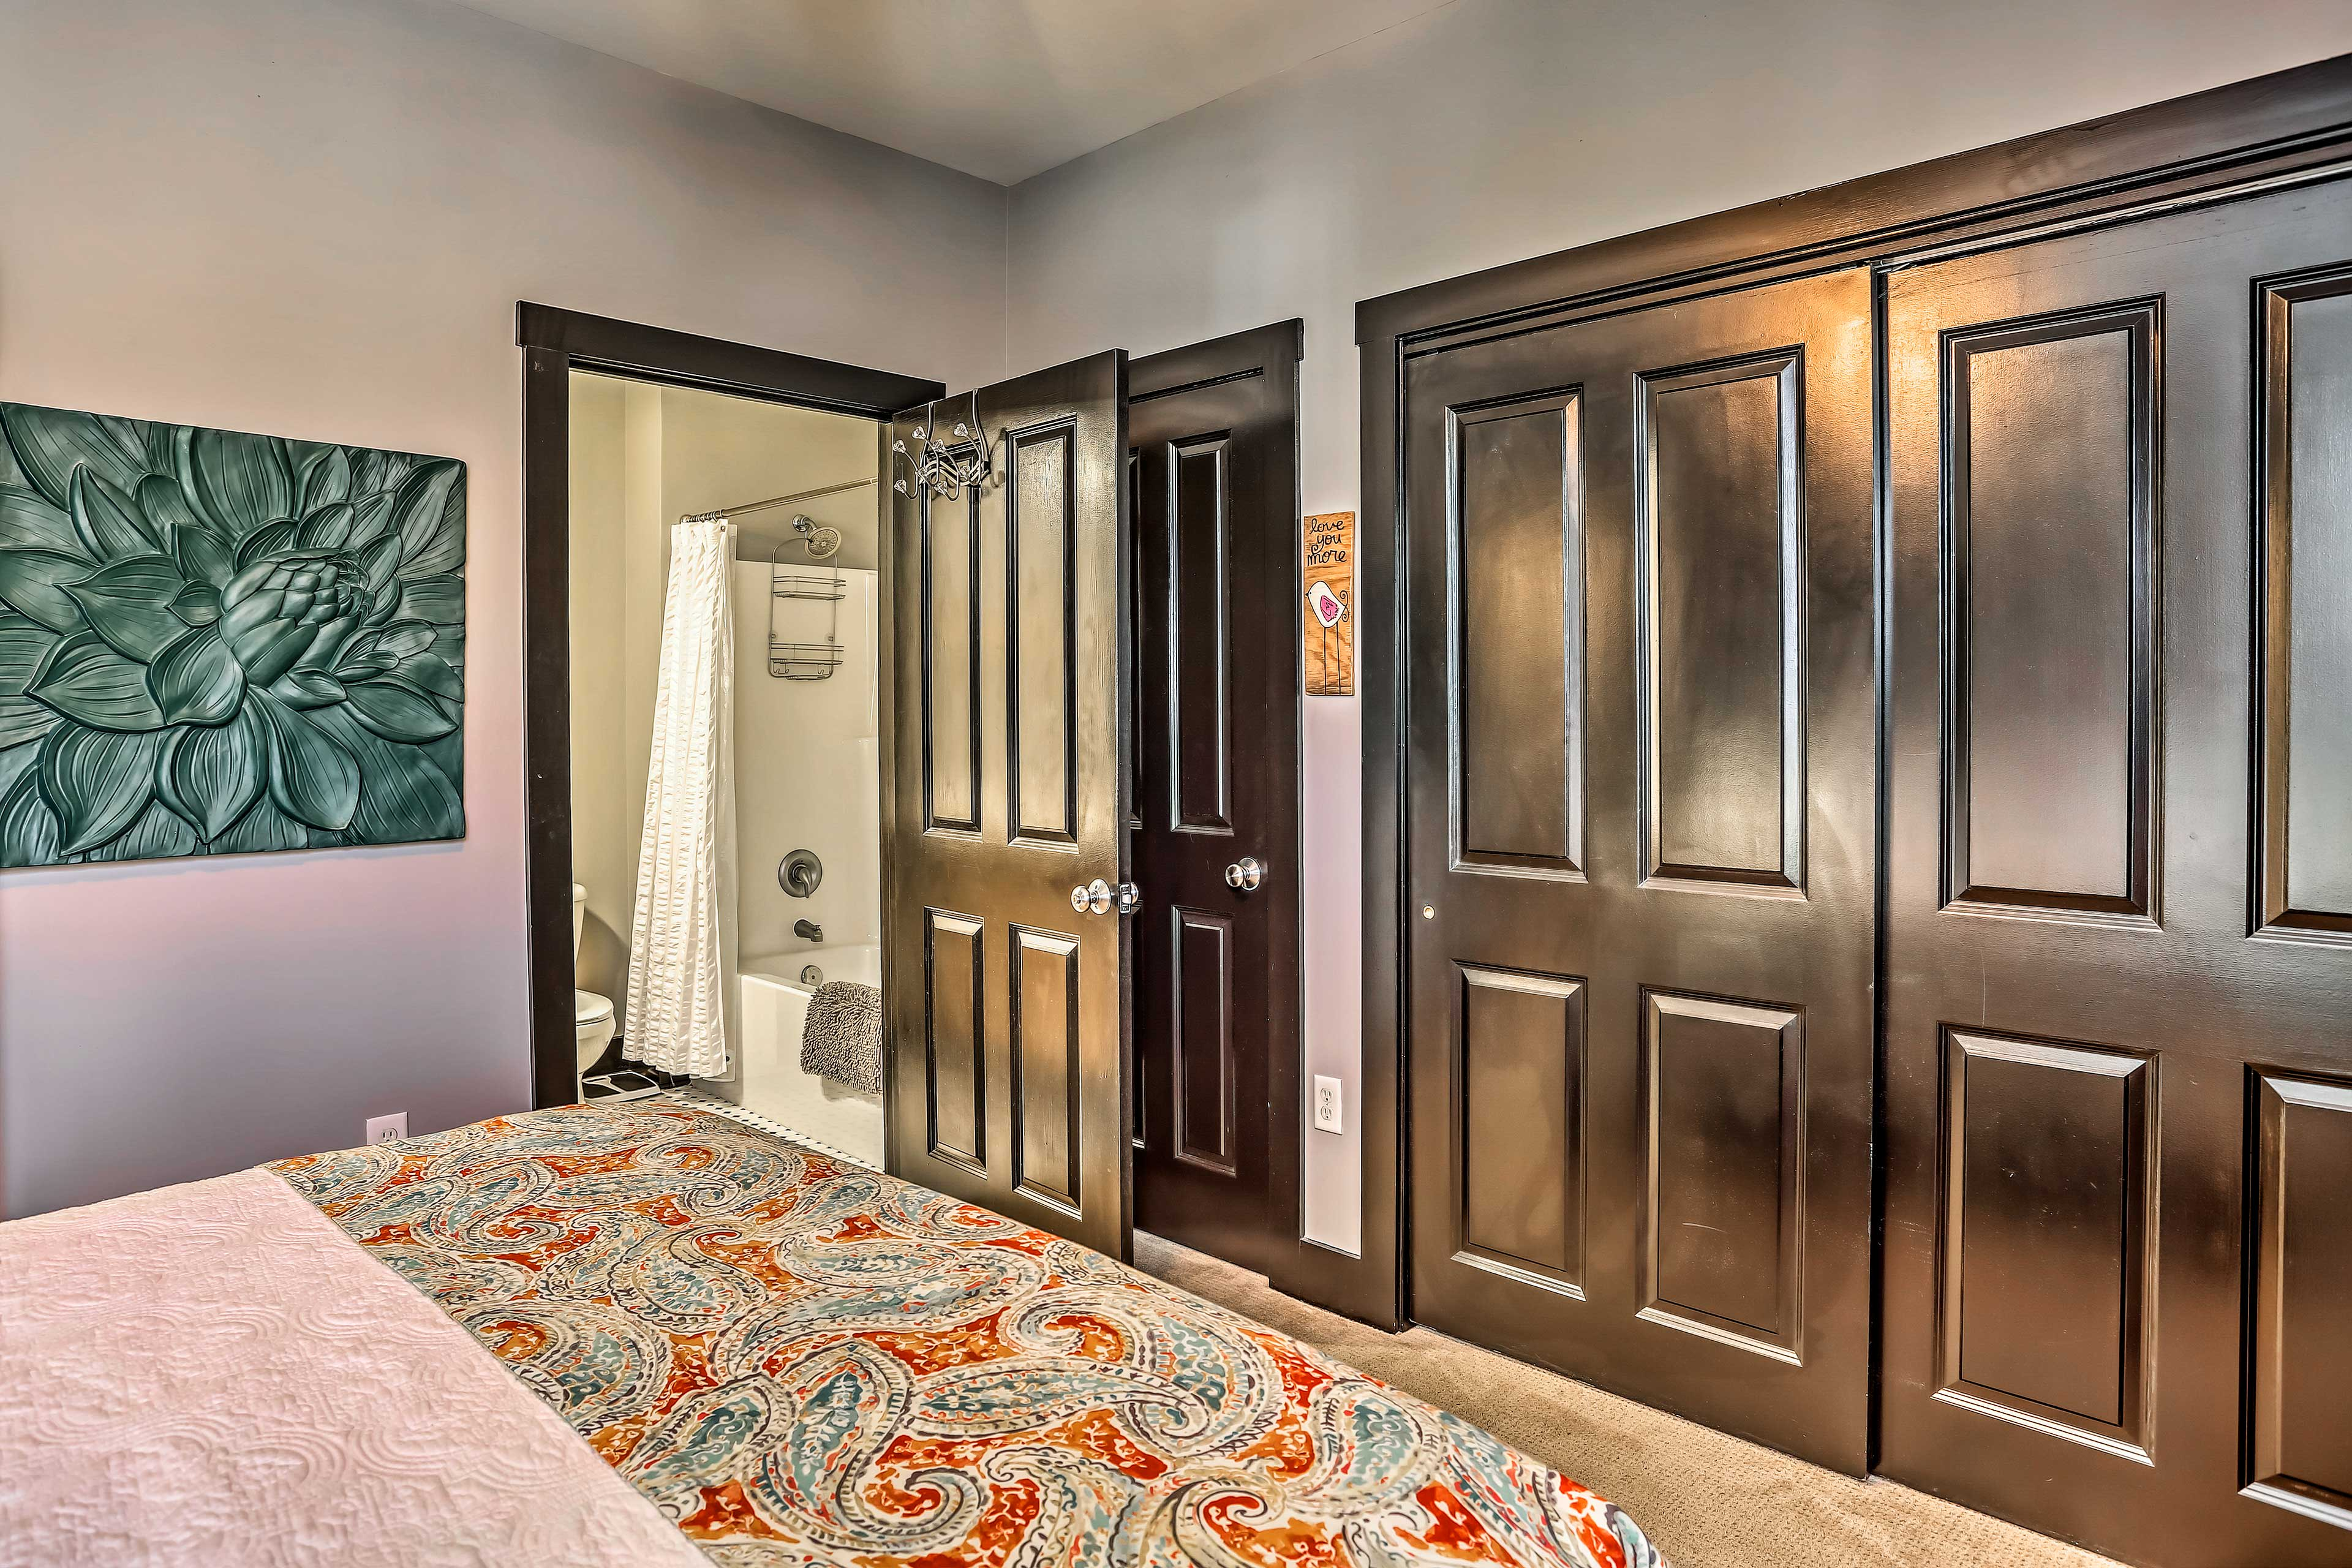 The room features an en-suite bathroom and ample closet space.